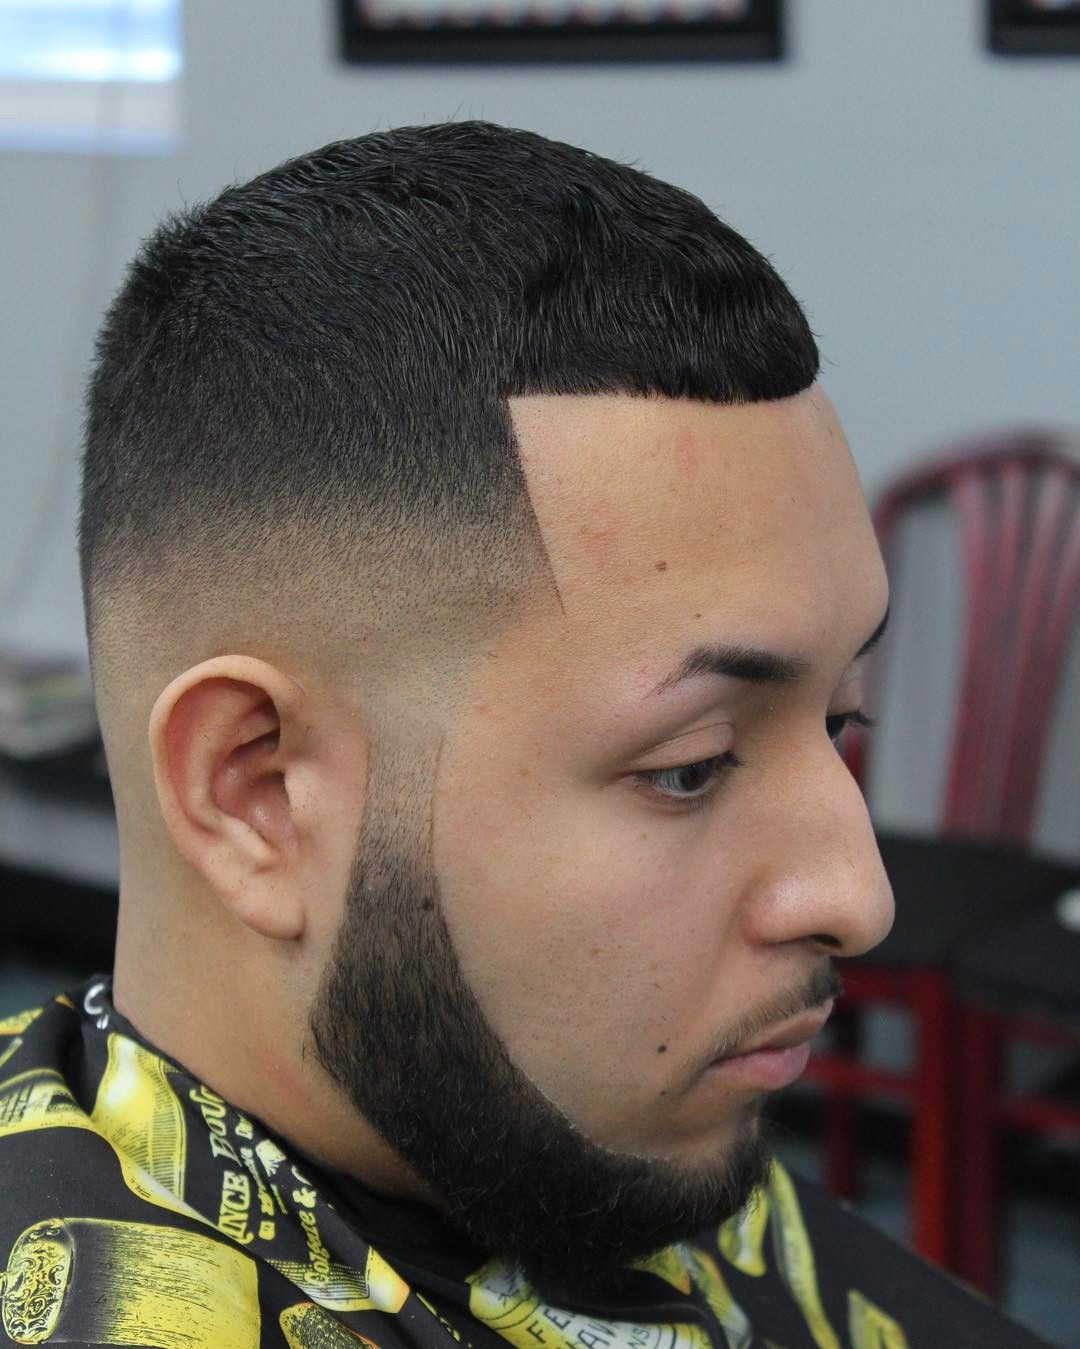 Cool 75 Formal High And Tight Haircut Ideas Show Your Style